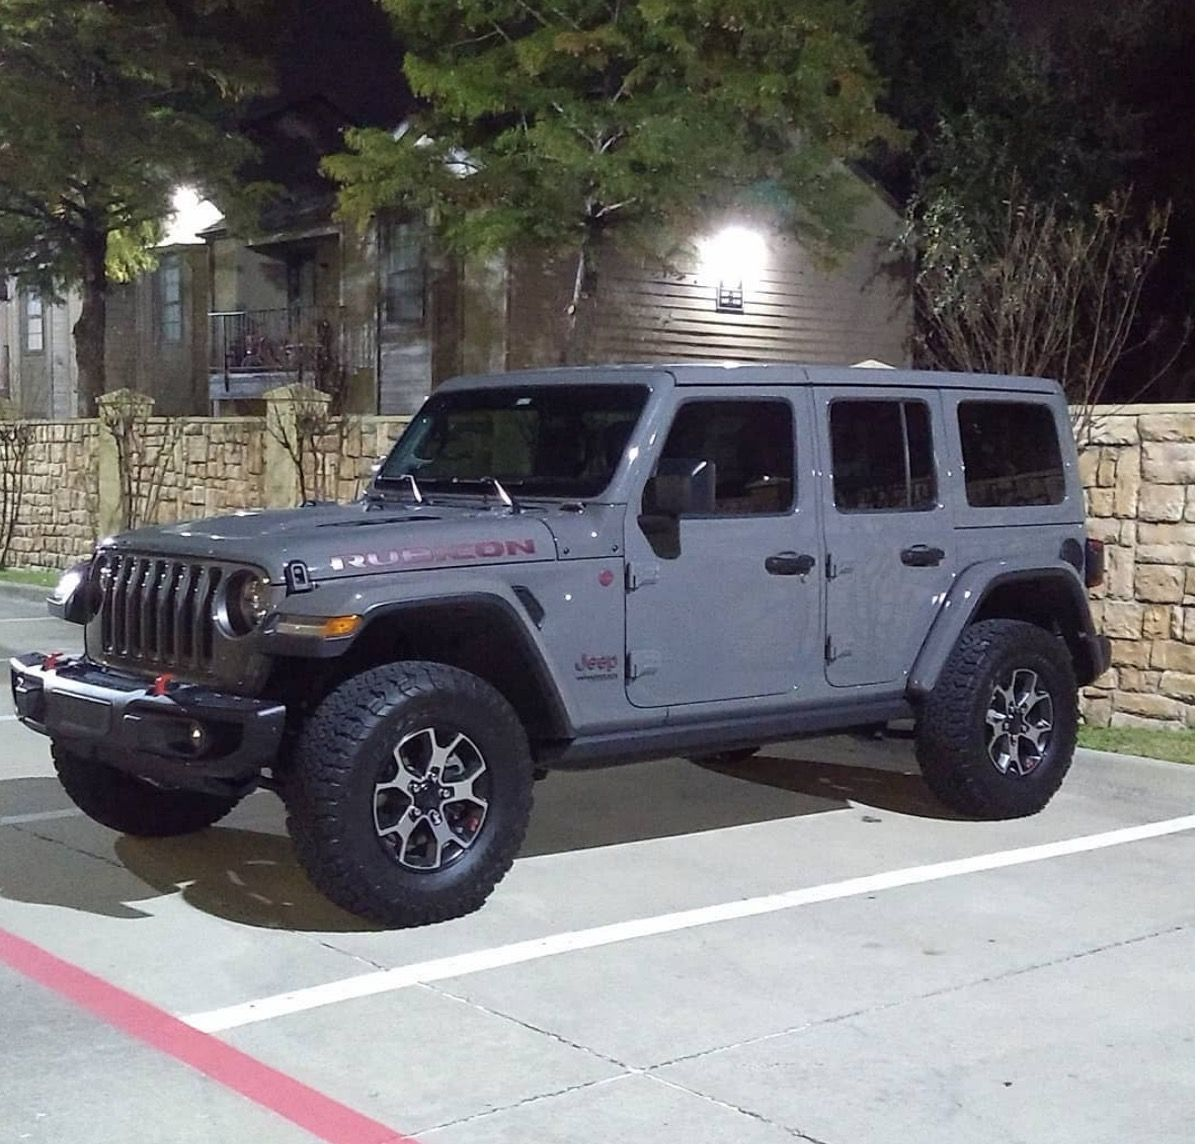 Pin by Lily Elledge on Dream car in 2020 Dream cars jeep